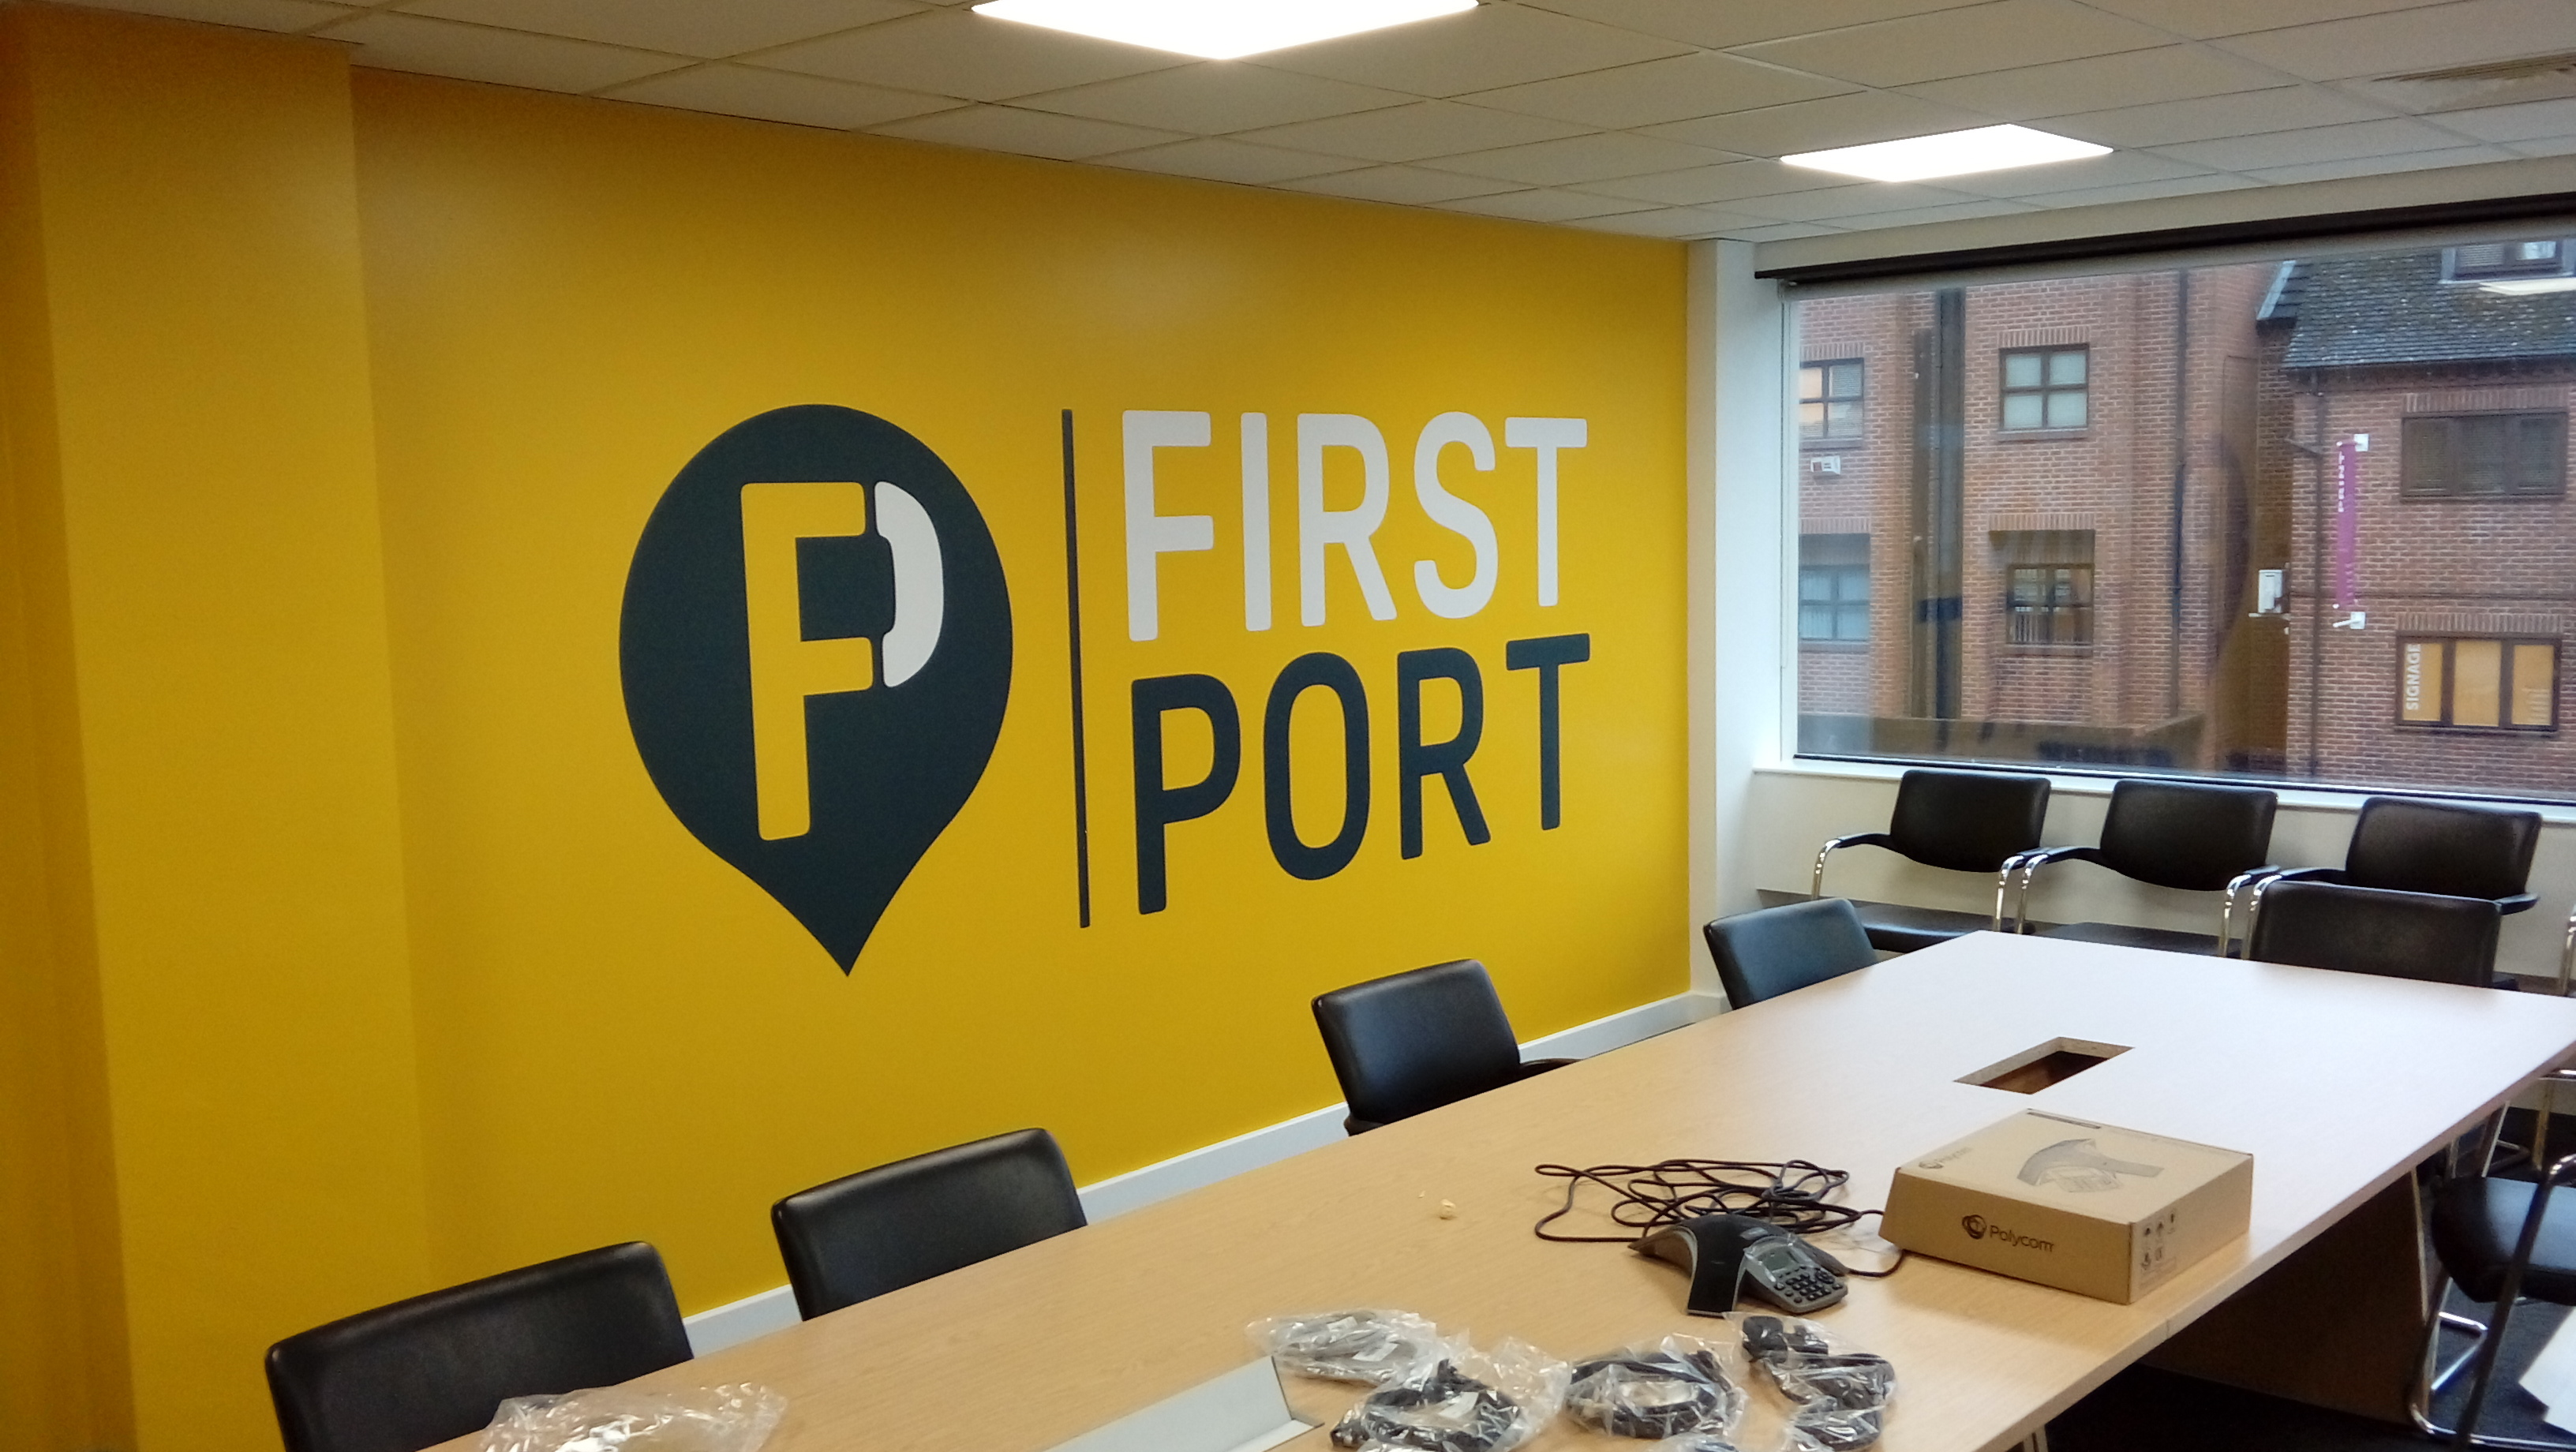 Self Adhesive Wall Decals - First Port | B2B Graphics